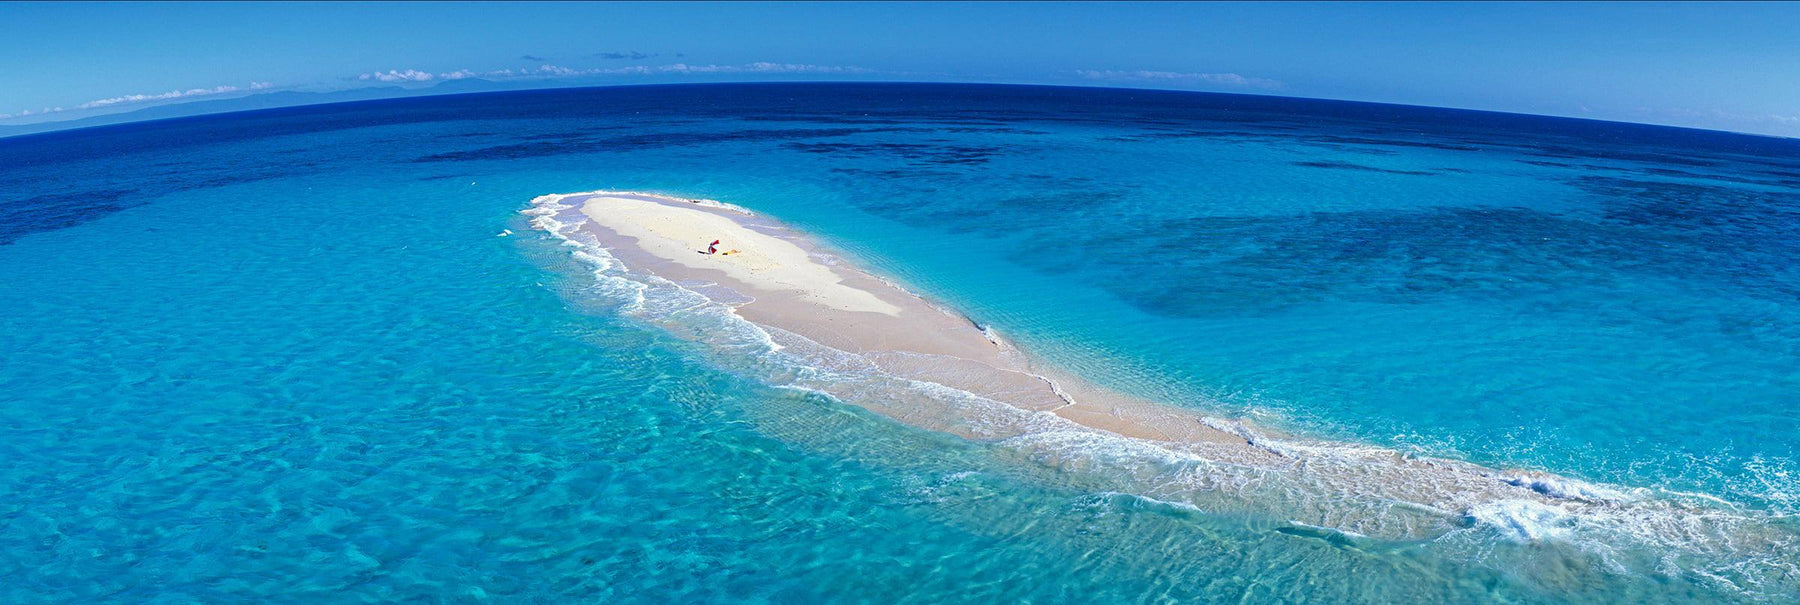 Aerial view of the sandy beach of Upolu Cay surrounded by the turquoise ocean at the Great Barrier Reef Australia